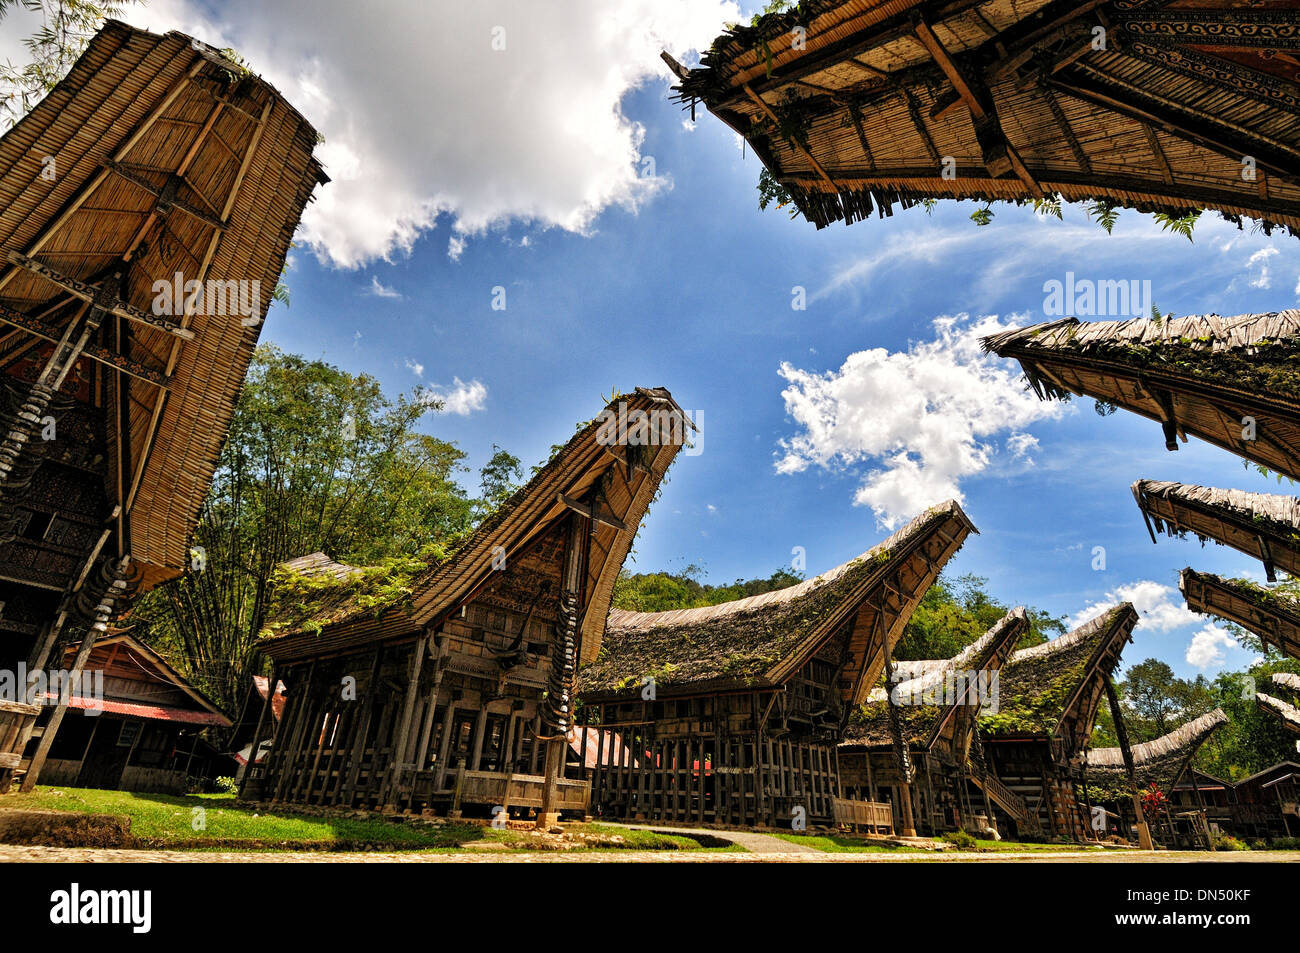 The series of Tongkonan at Kete Kesu, Londa, South Sulawesi - Stock Image